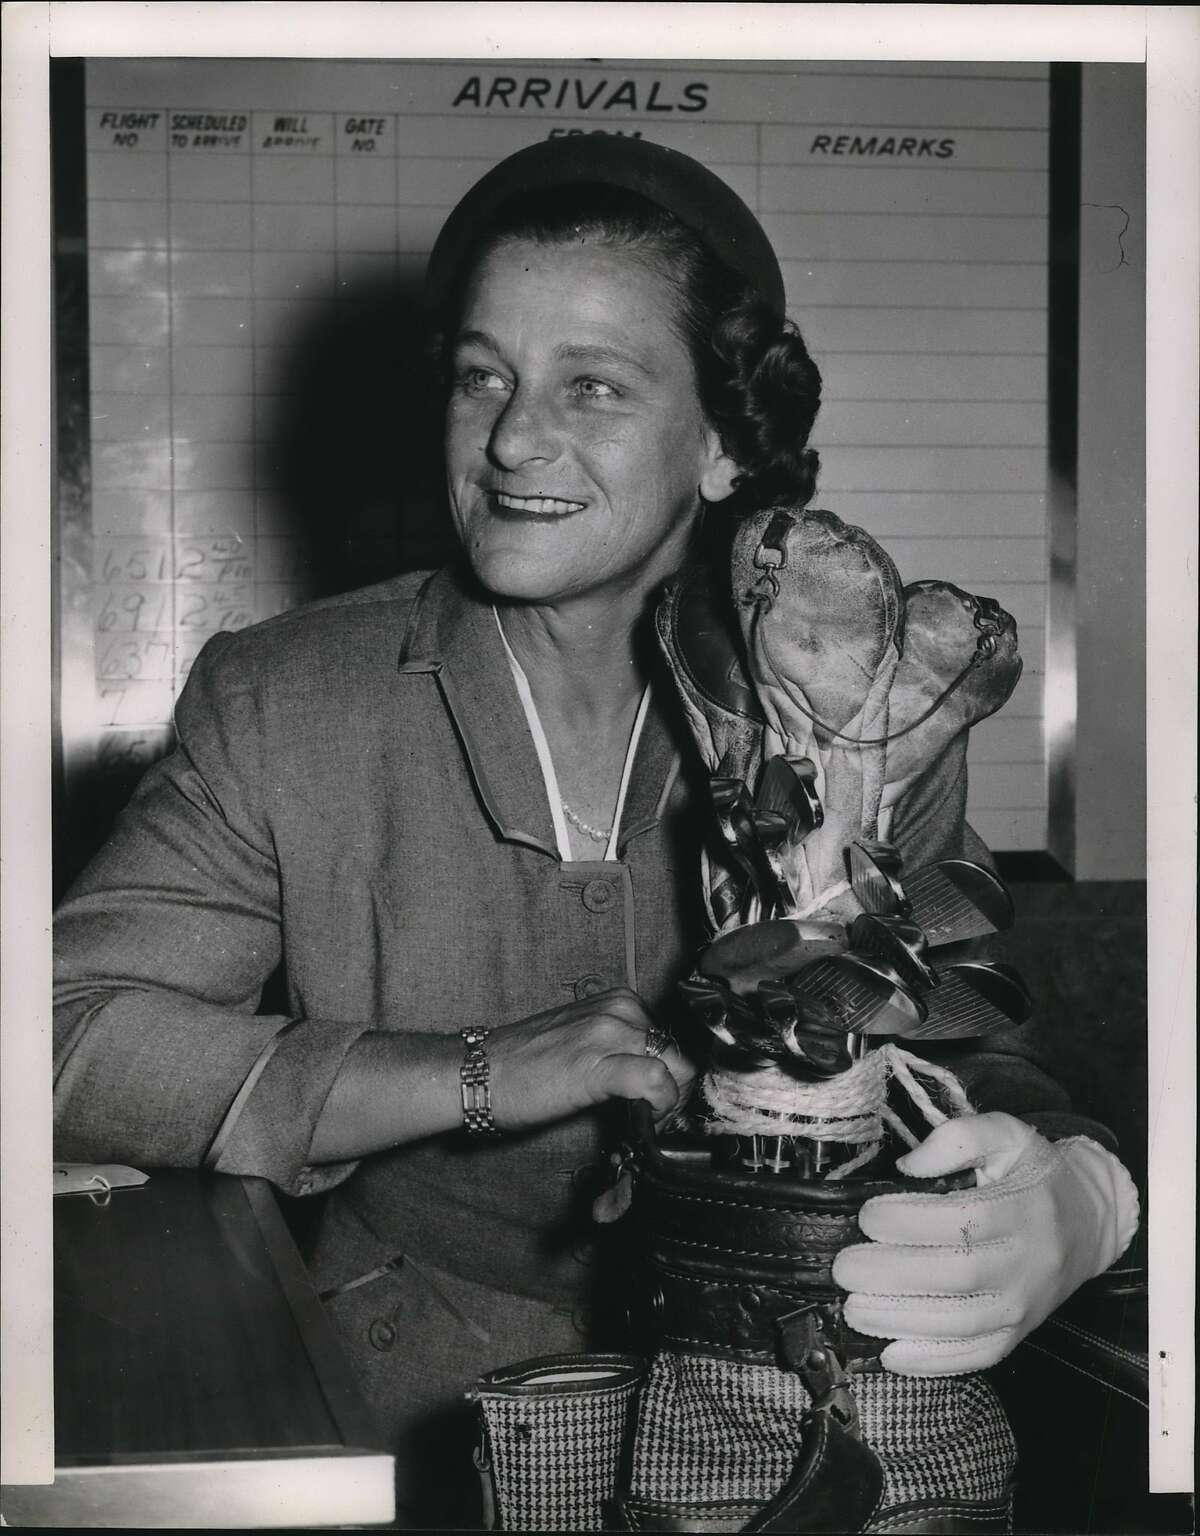 Babe Didrickson Zaharias, woman athlete. Fort Worth, Texas - Babe Didrickson Zaharias, woman athlete of the half-century, carries her golf clubs with her as she boards a plane here for Washington today. The Babe, who overcame a cancer operation to make a come-back in Tournament golf, said she had a dinner date with President and Mrs. Eisenhower at the White House tonight, but didn't know what brought on the invitation. The White House said it had no formal appointment for Mrs. Zaharias.